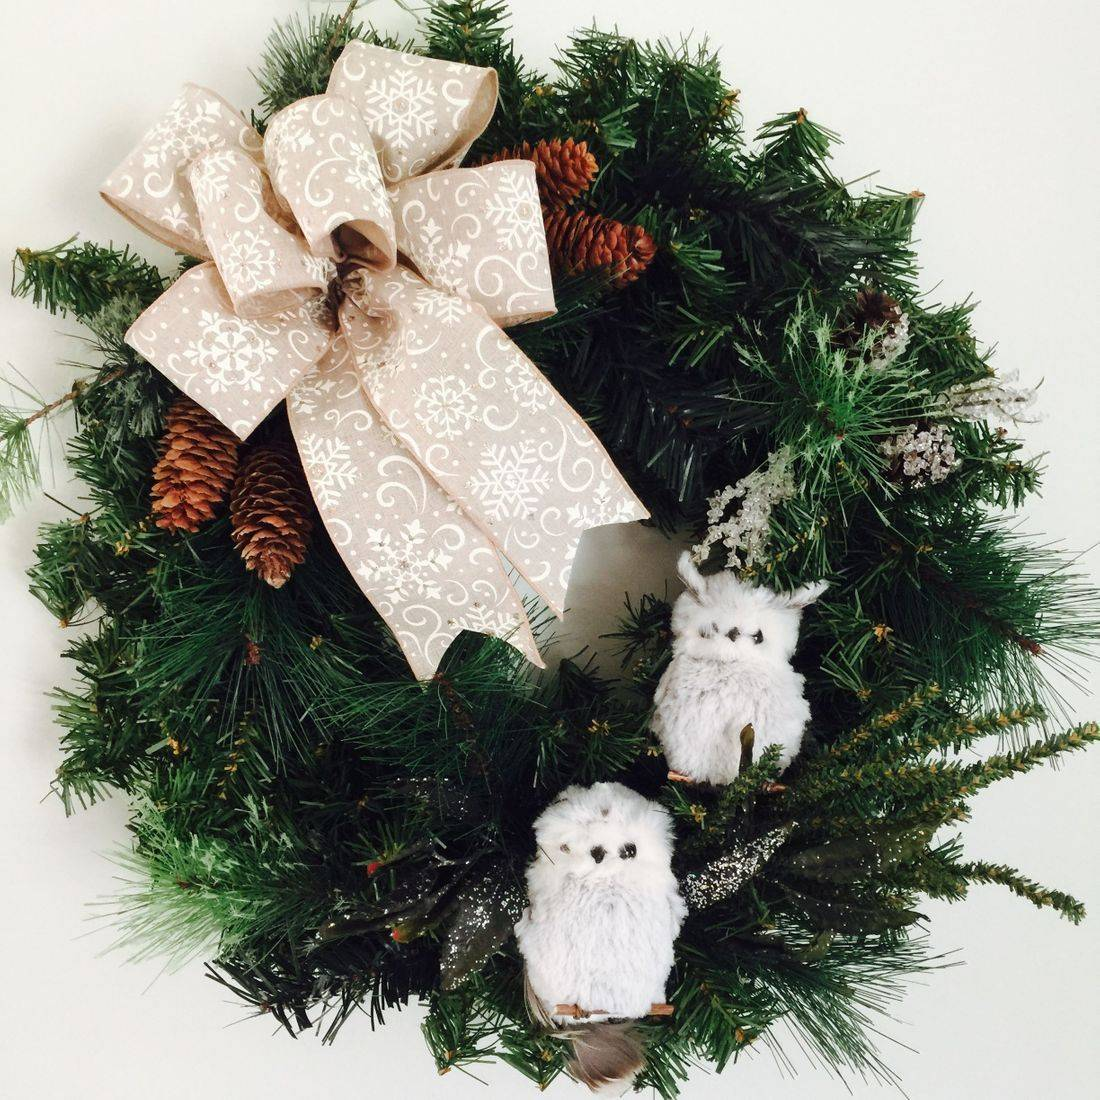 Evergreen Christmas Owl wreath